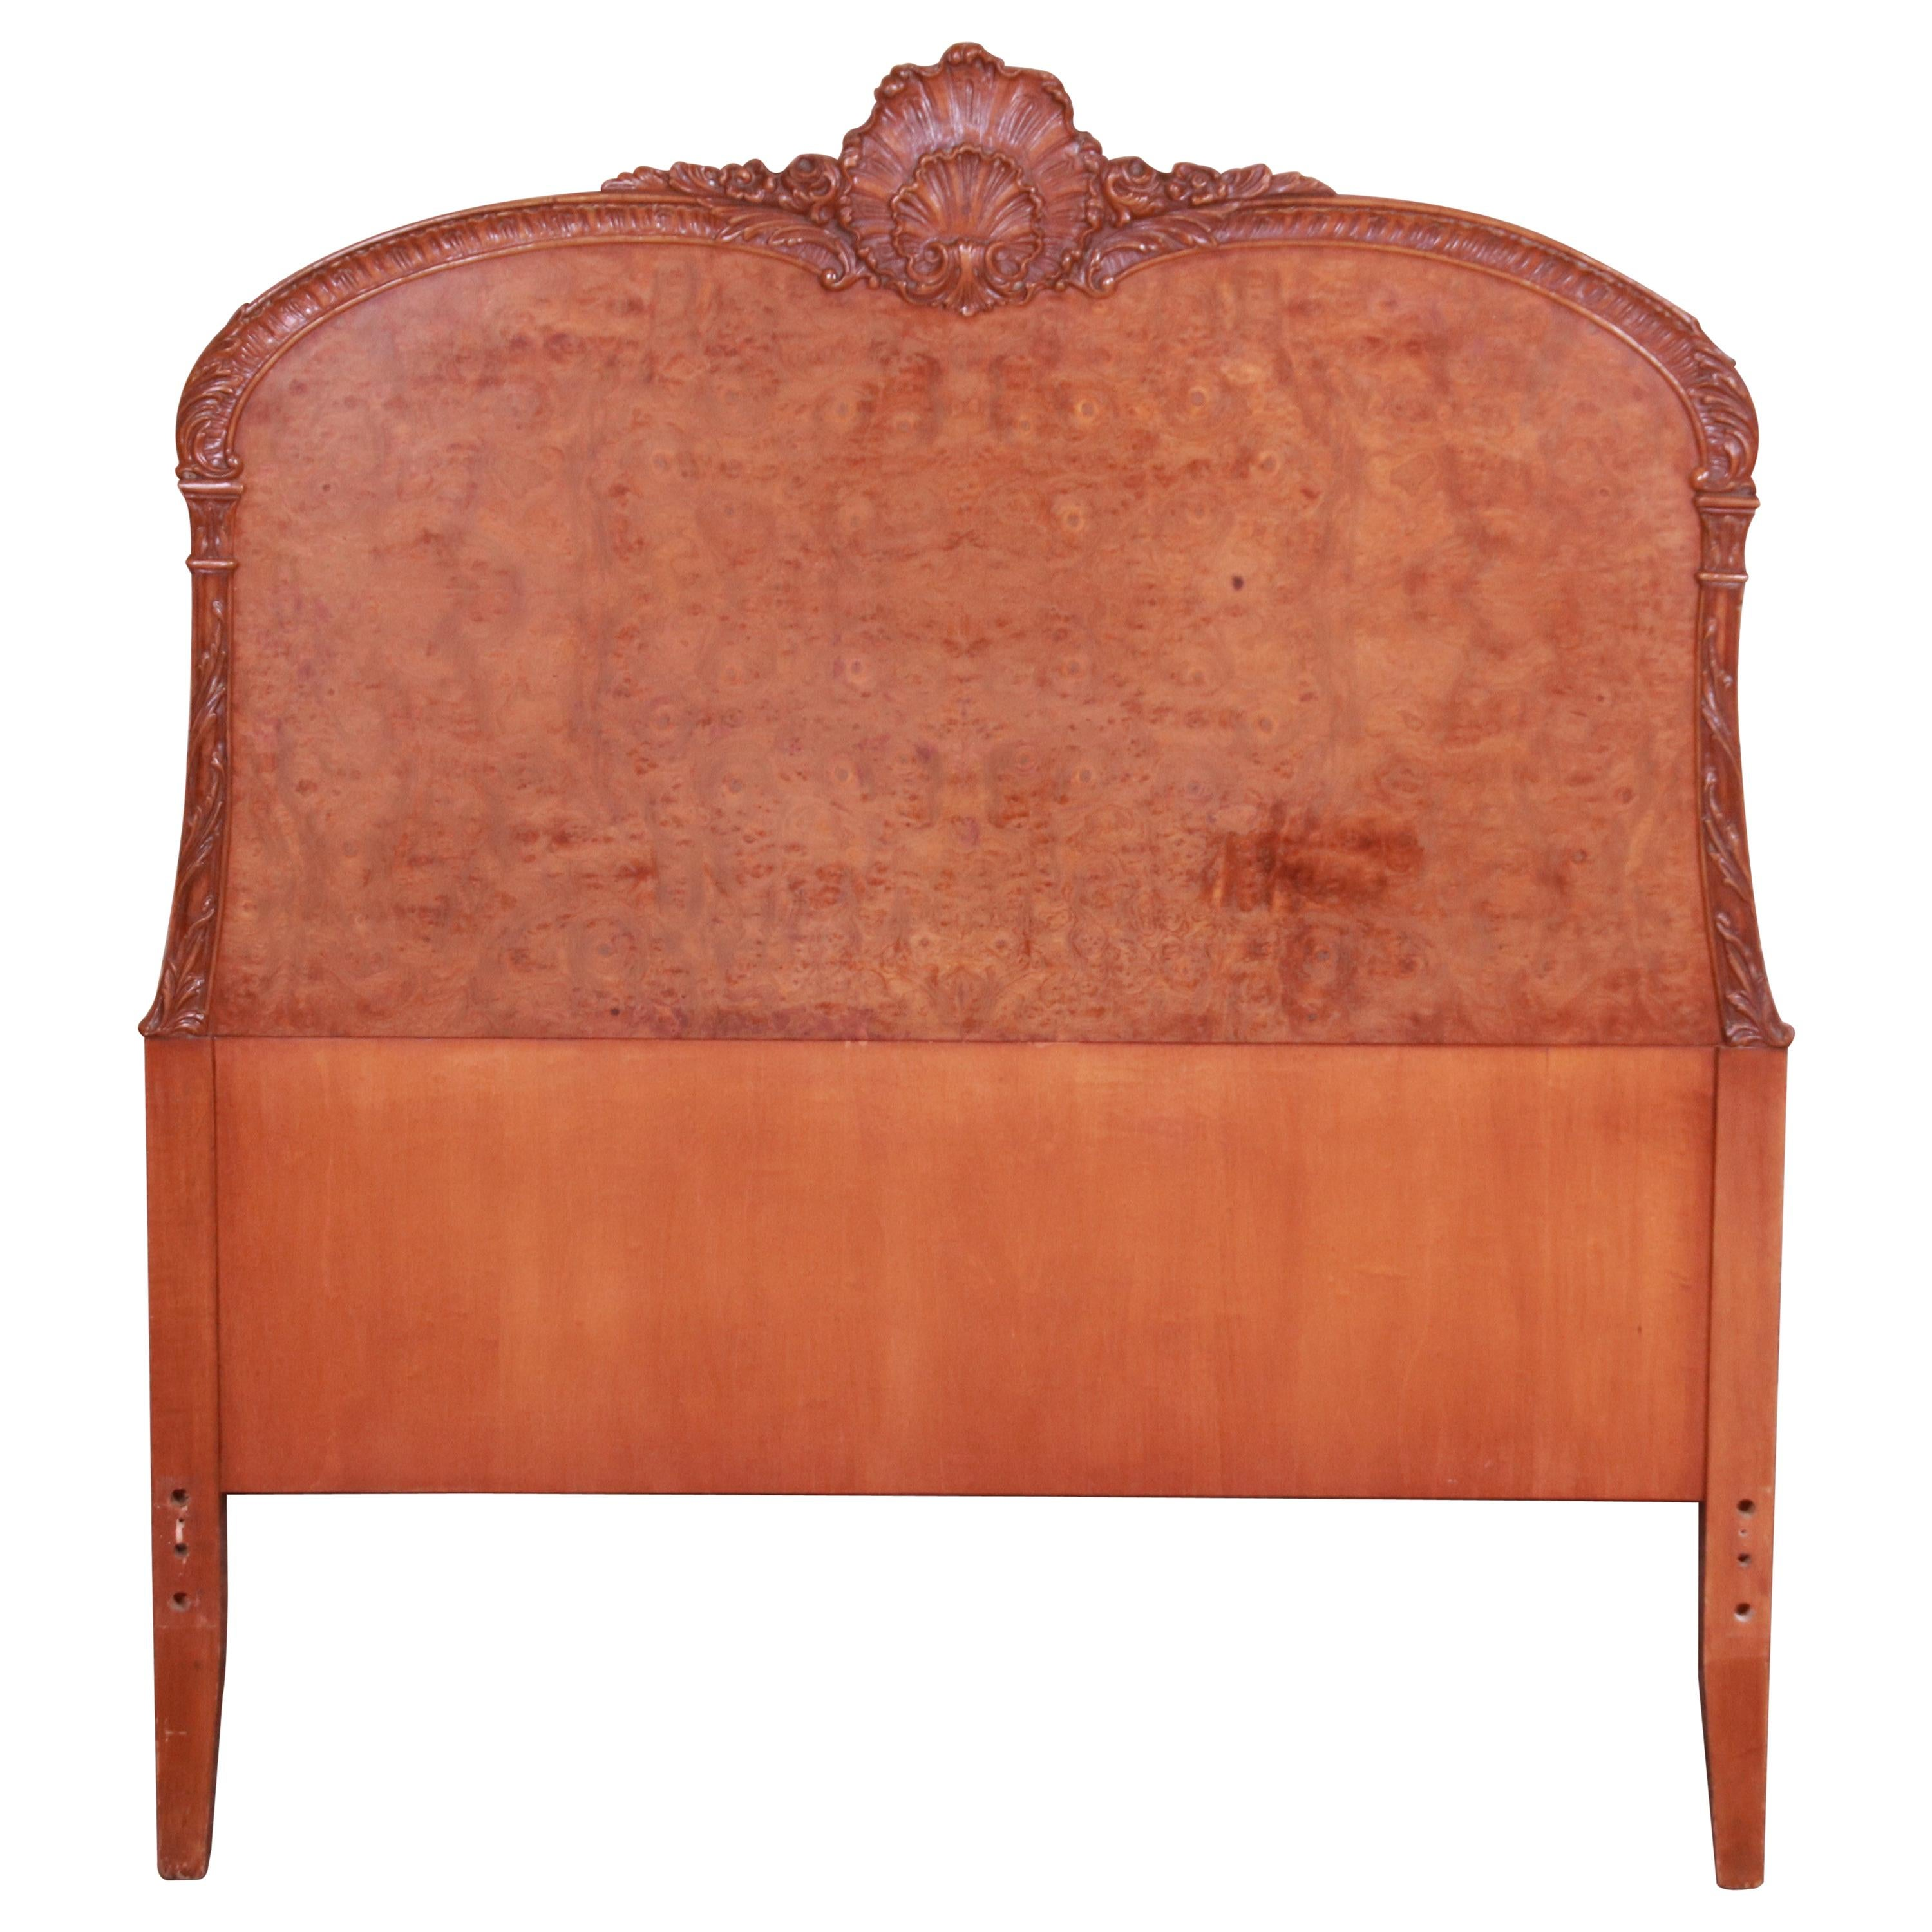 French Provincial Burl Wood Twin Headboard Attributed to Romweber, circa 1940s